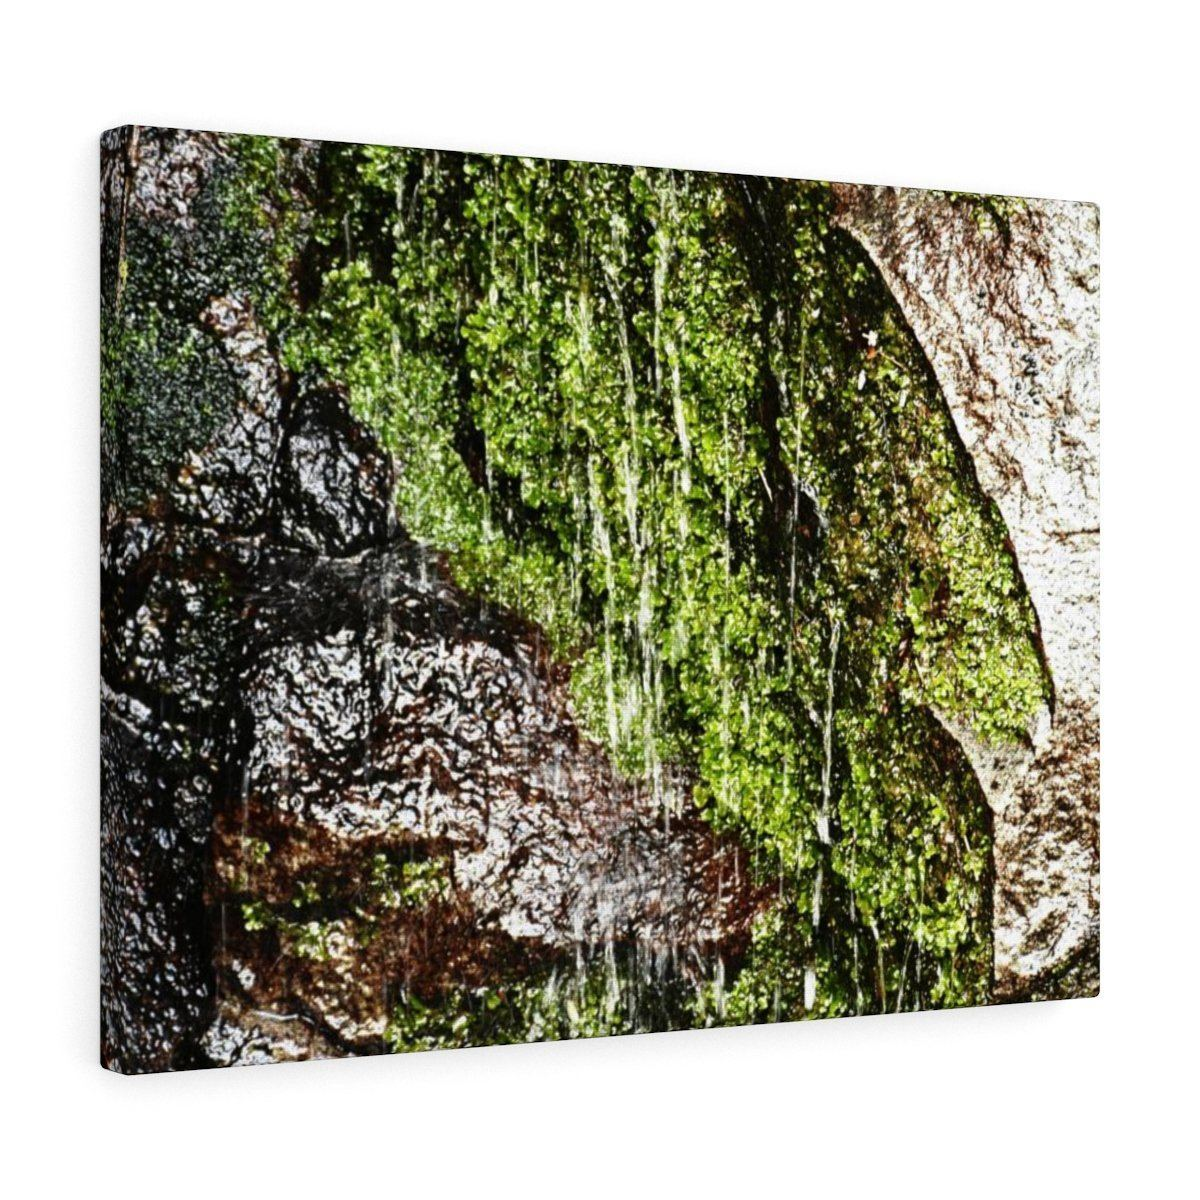 Canvas Gallery Wraps - US Made - CG Pro Prints in 2 days - Rio Sabana - El Yunque exploration on Sep 2019 - on the road PR 191 during the rains - water drips from all sides Canvas Printify